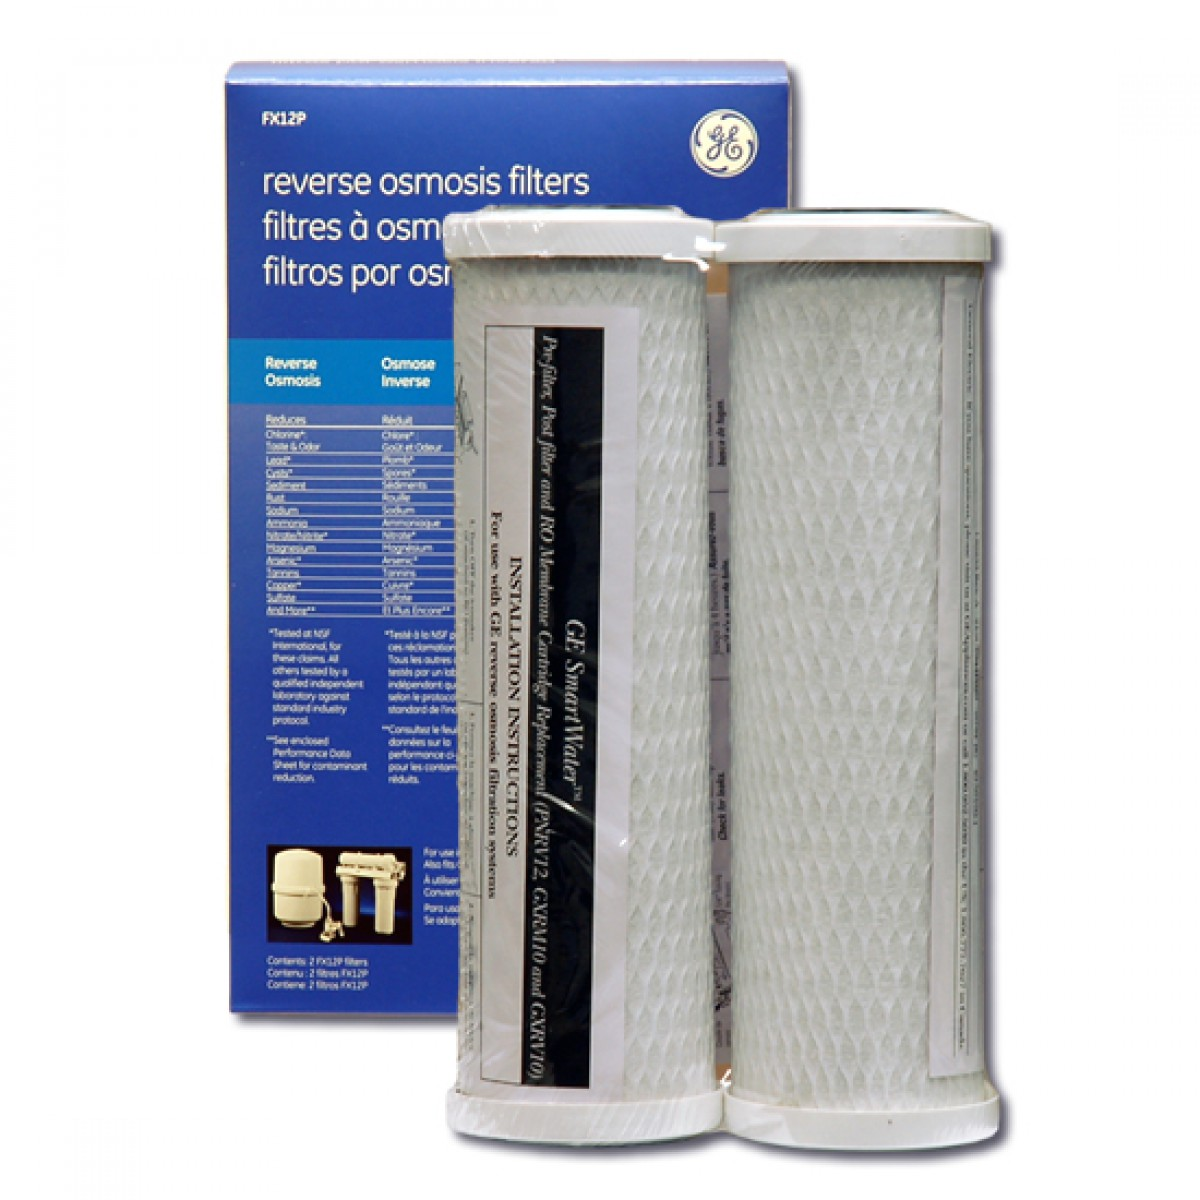 fx12p ge smartwater reverse osmosis filter set. Black Bedroom Furniture Sets. Home Design Ideas